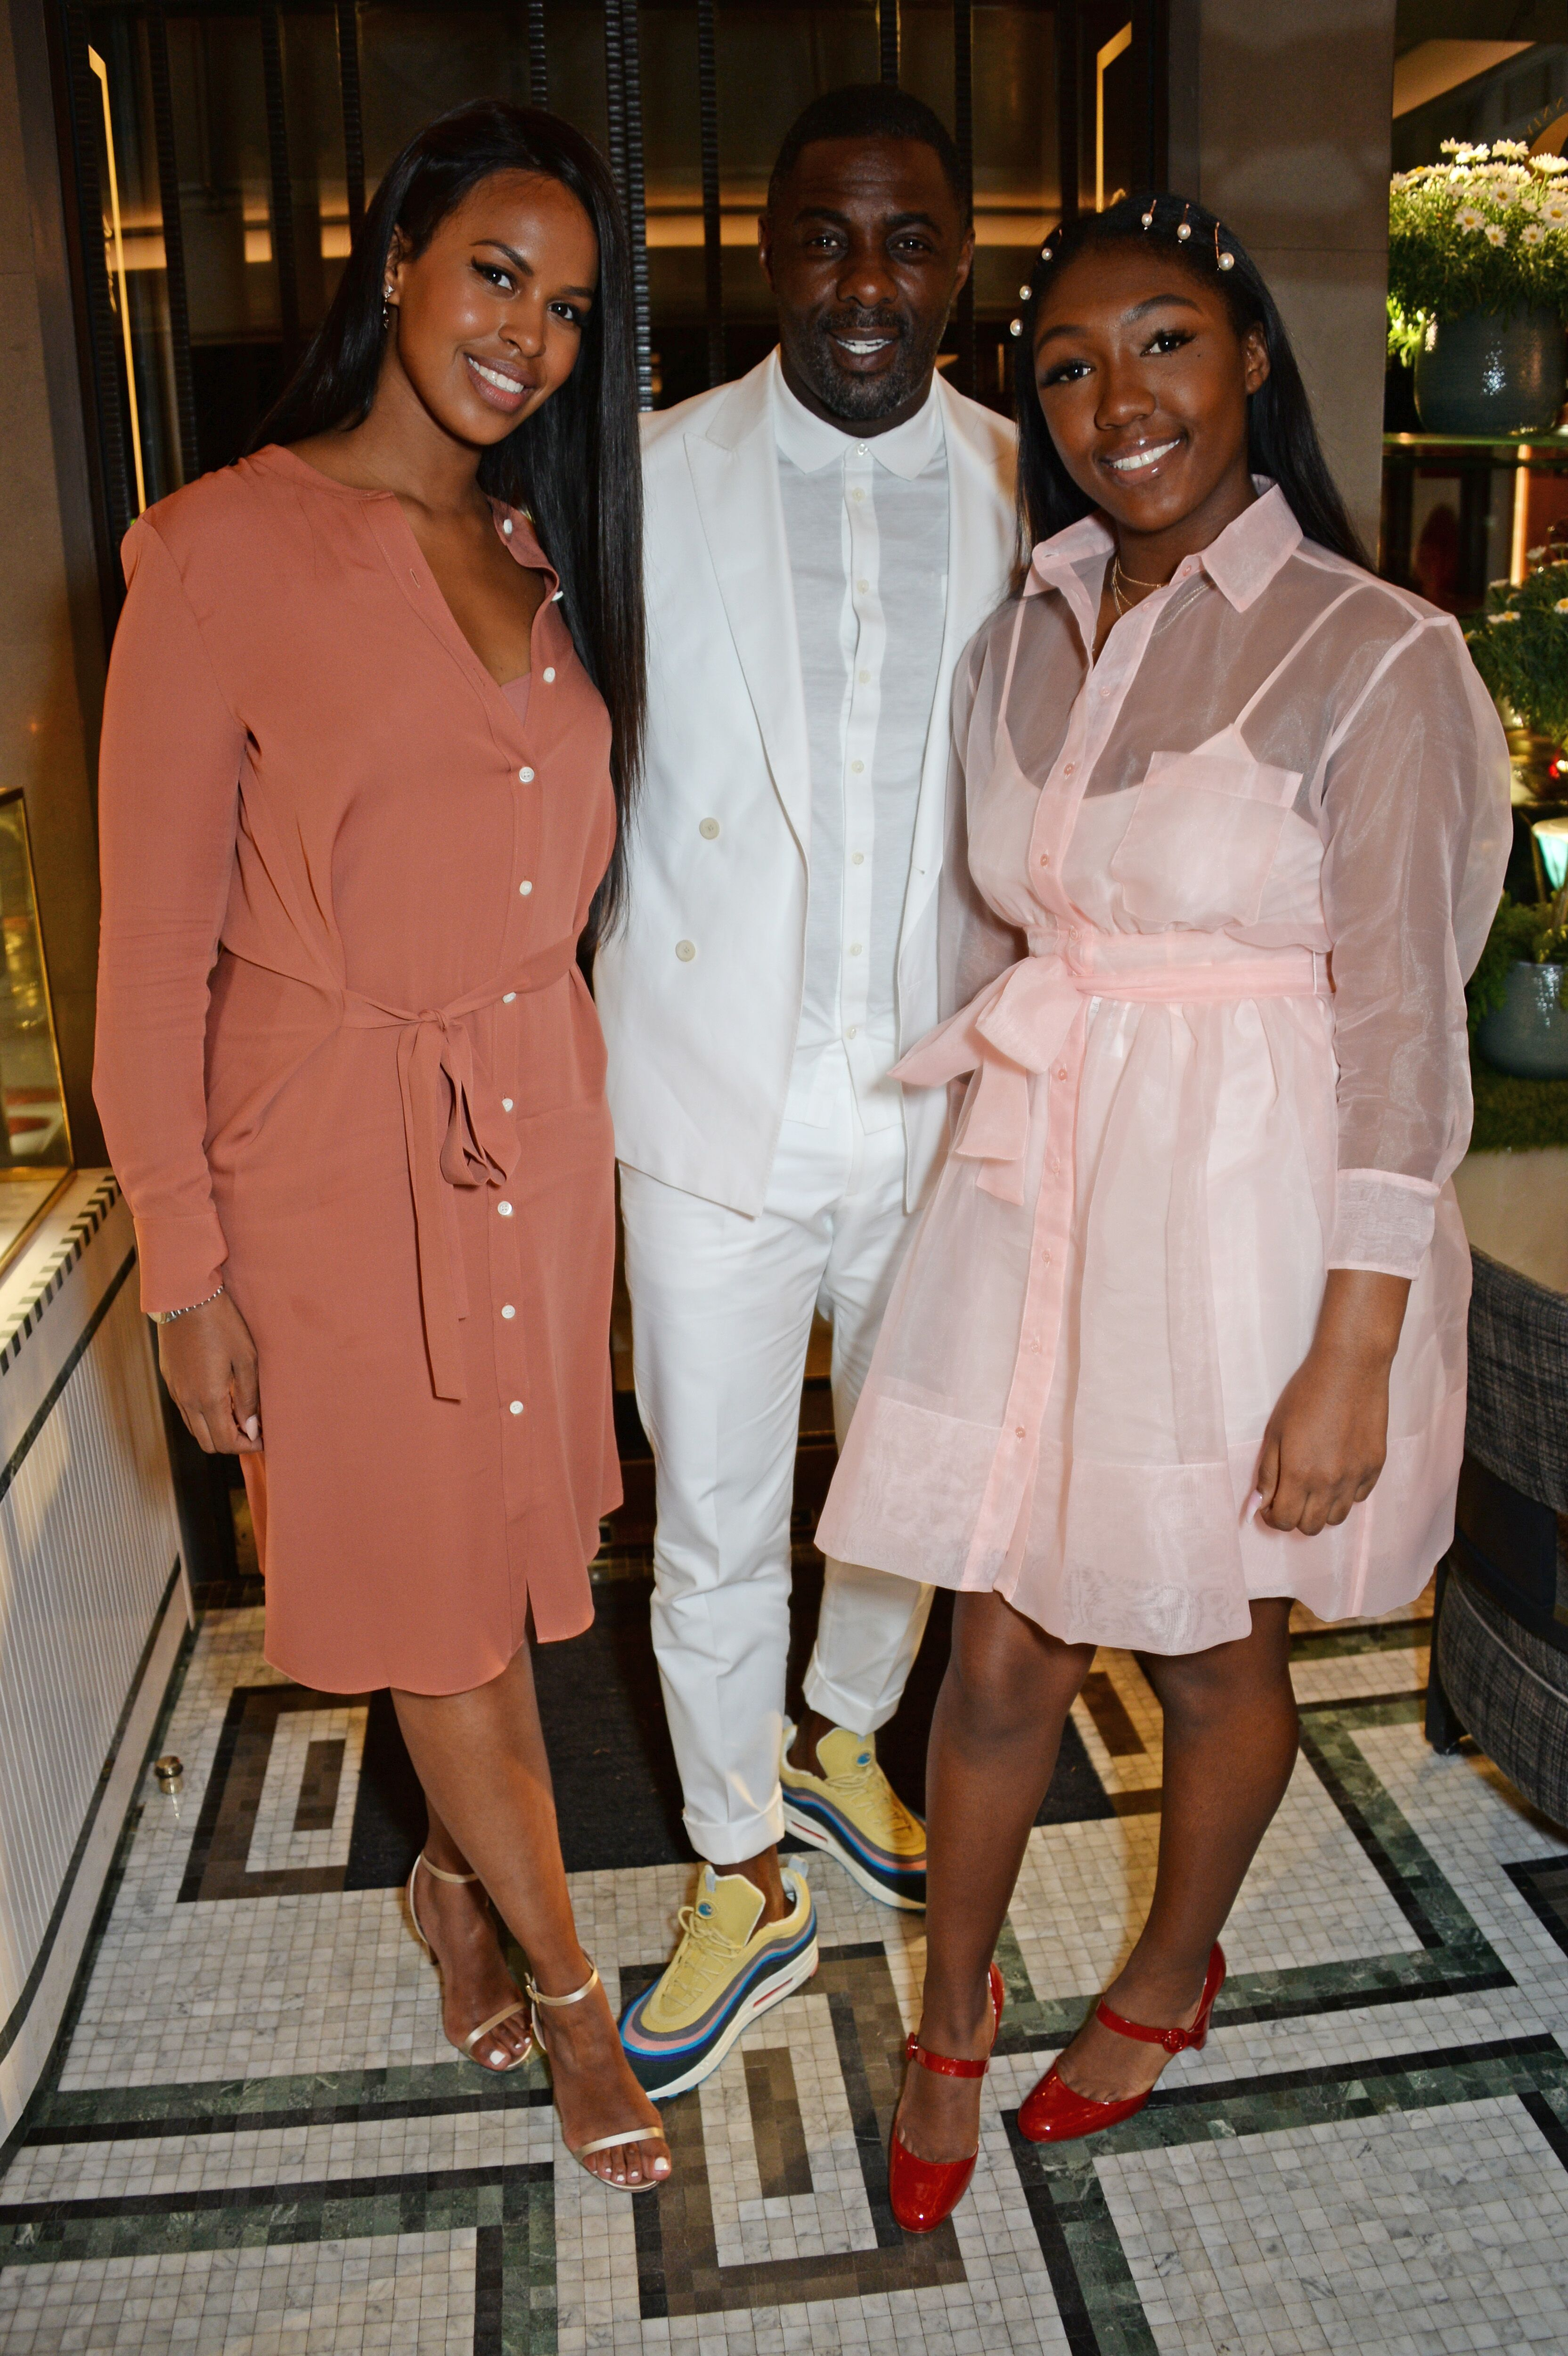 Sabrina Dhowre, Idris Elba and daughter Isan Elba at the ABB Formula E Qatar Airways Paris E-Prix after party in Paris in 2018 ! Source: Getty Images